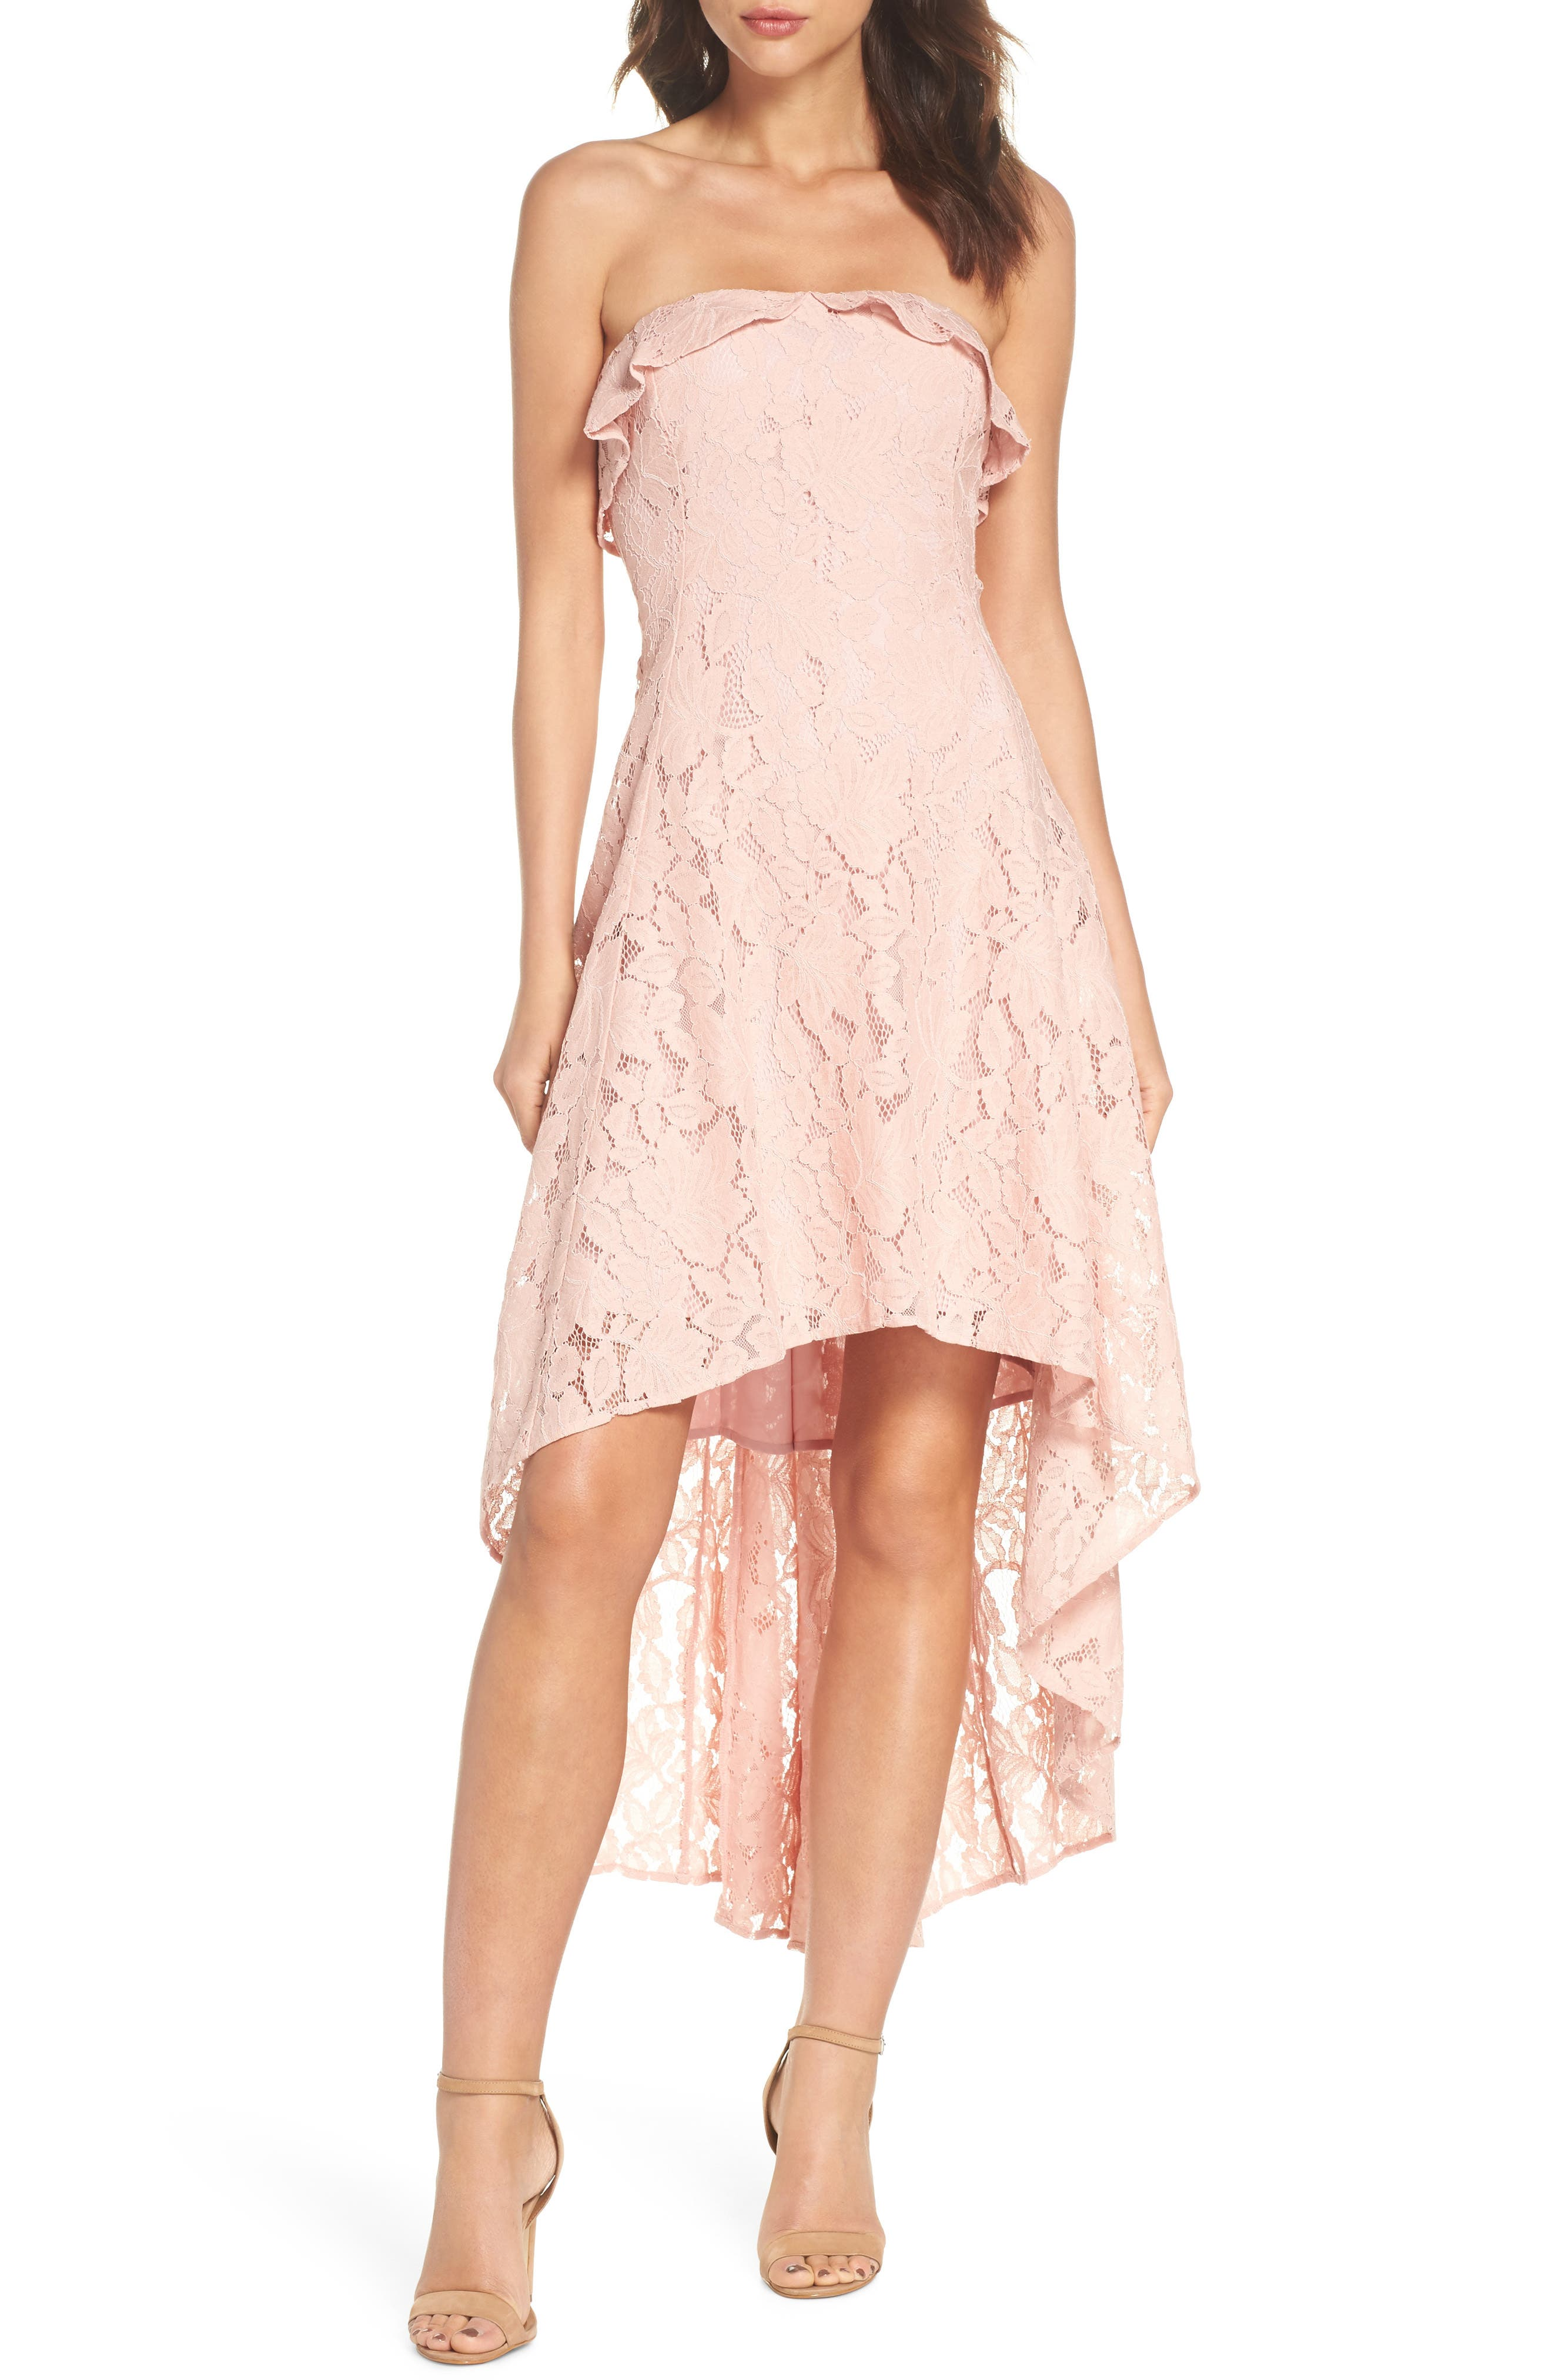 19 Cooper Strapless Lace High/Low Dress